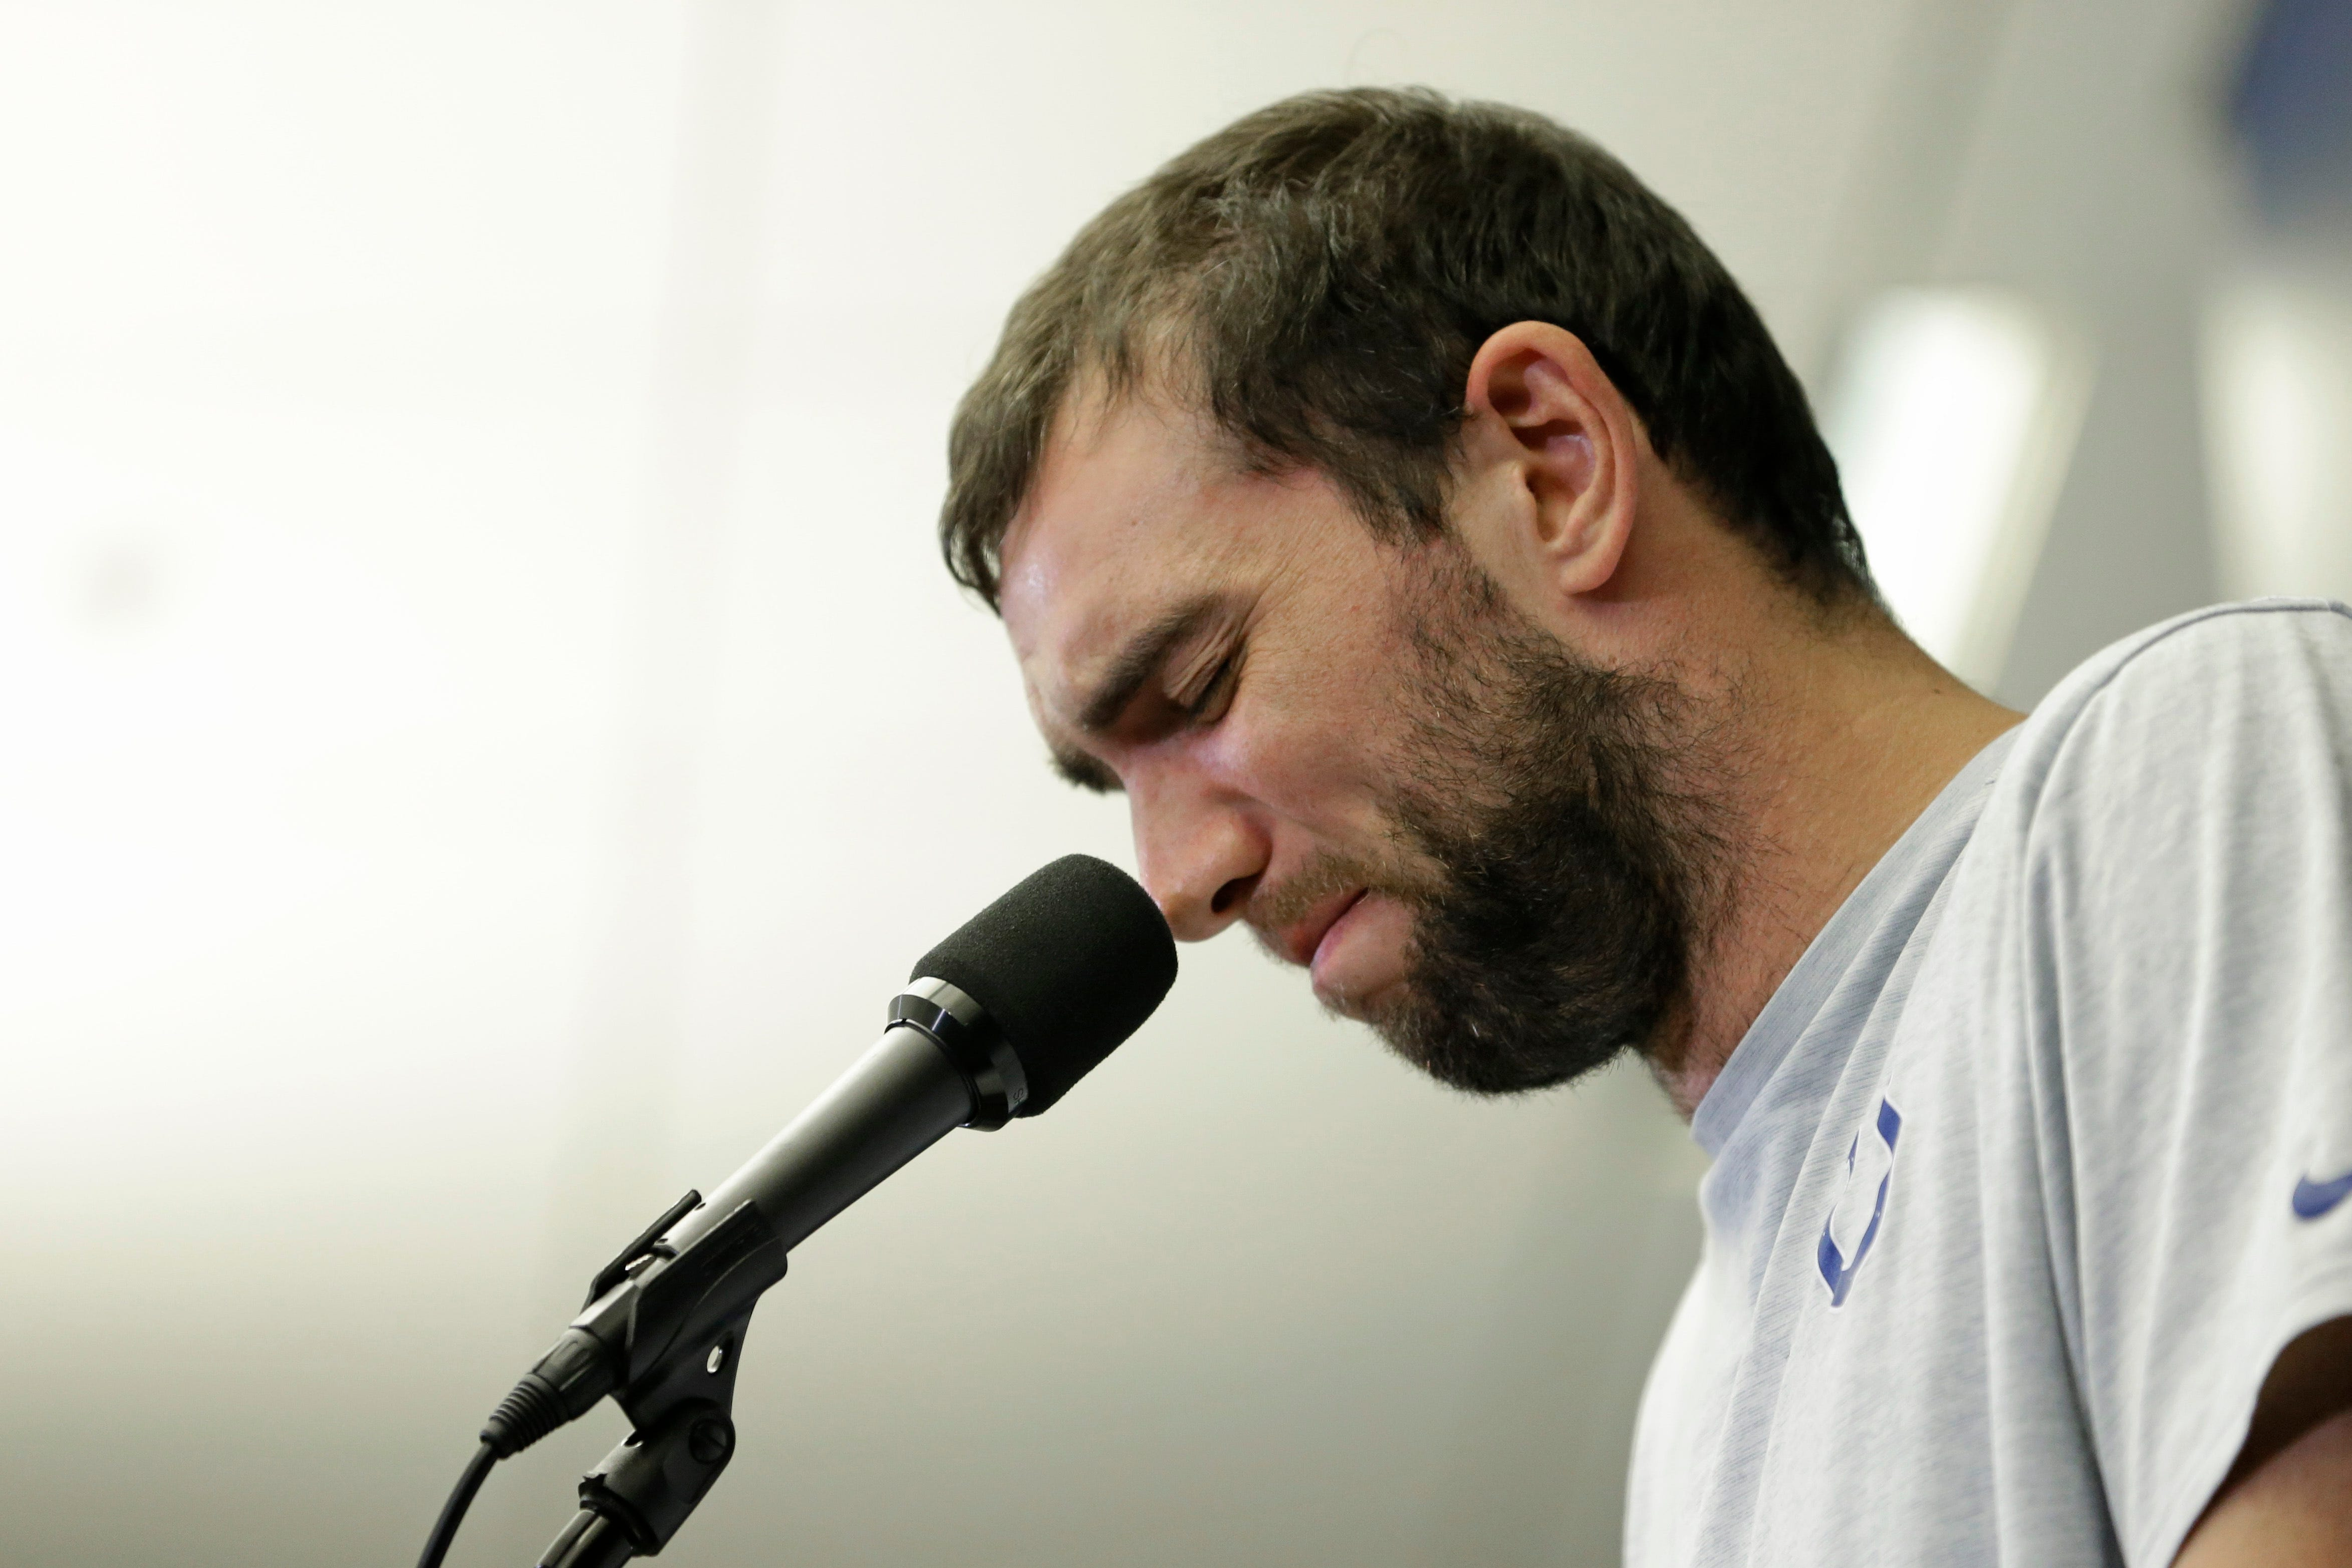 Opinion: Andrew Luck shows strength in walking away. But some Colts fans just don't get it